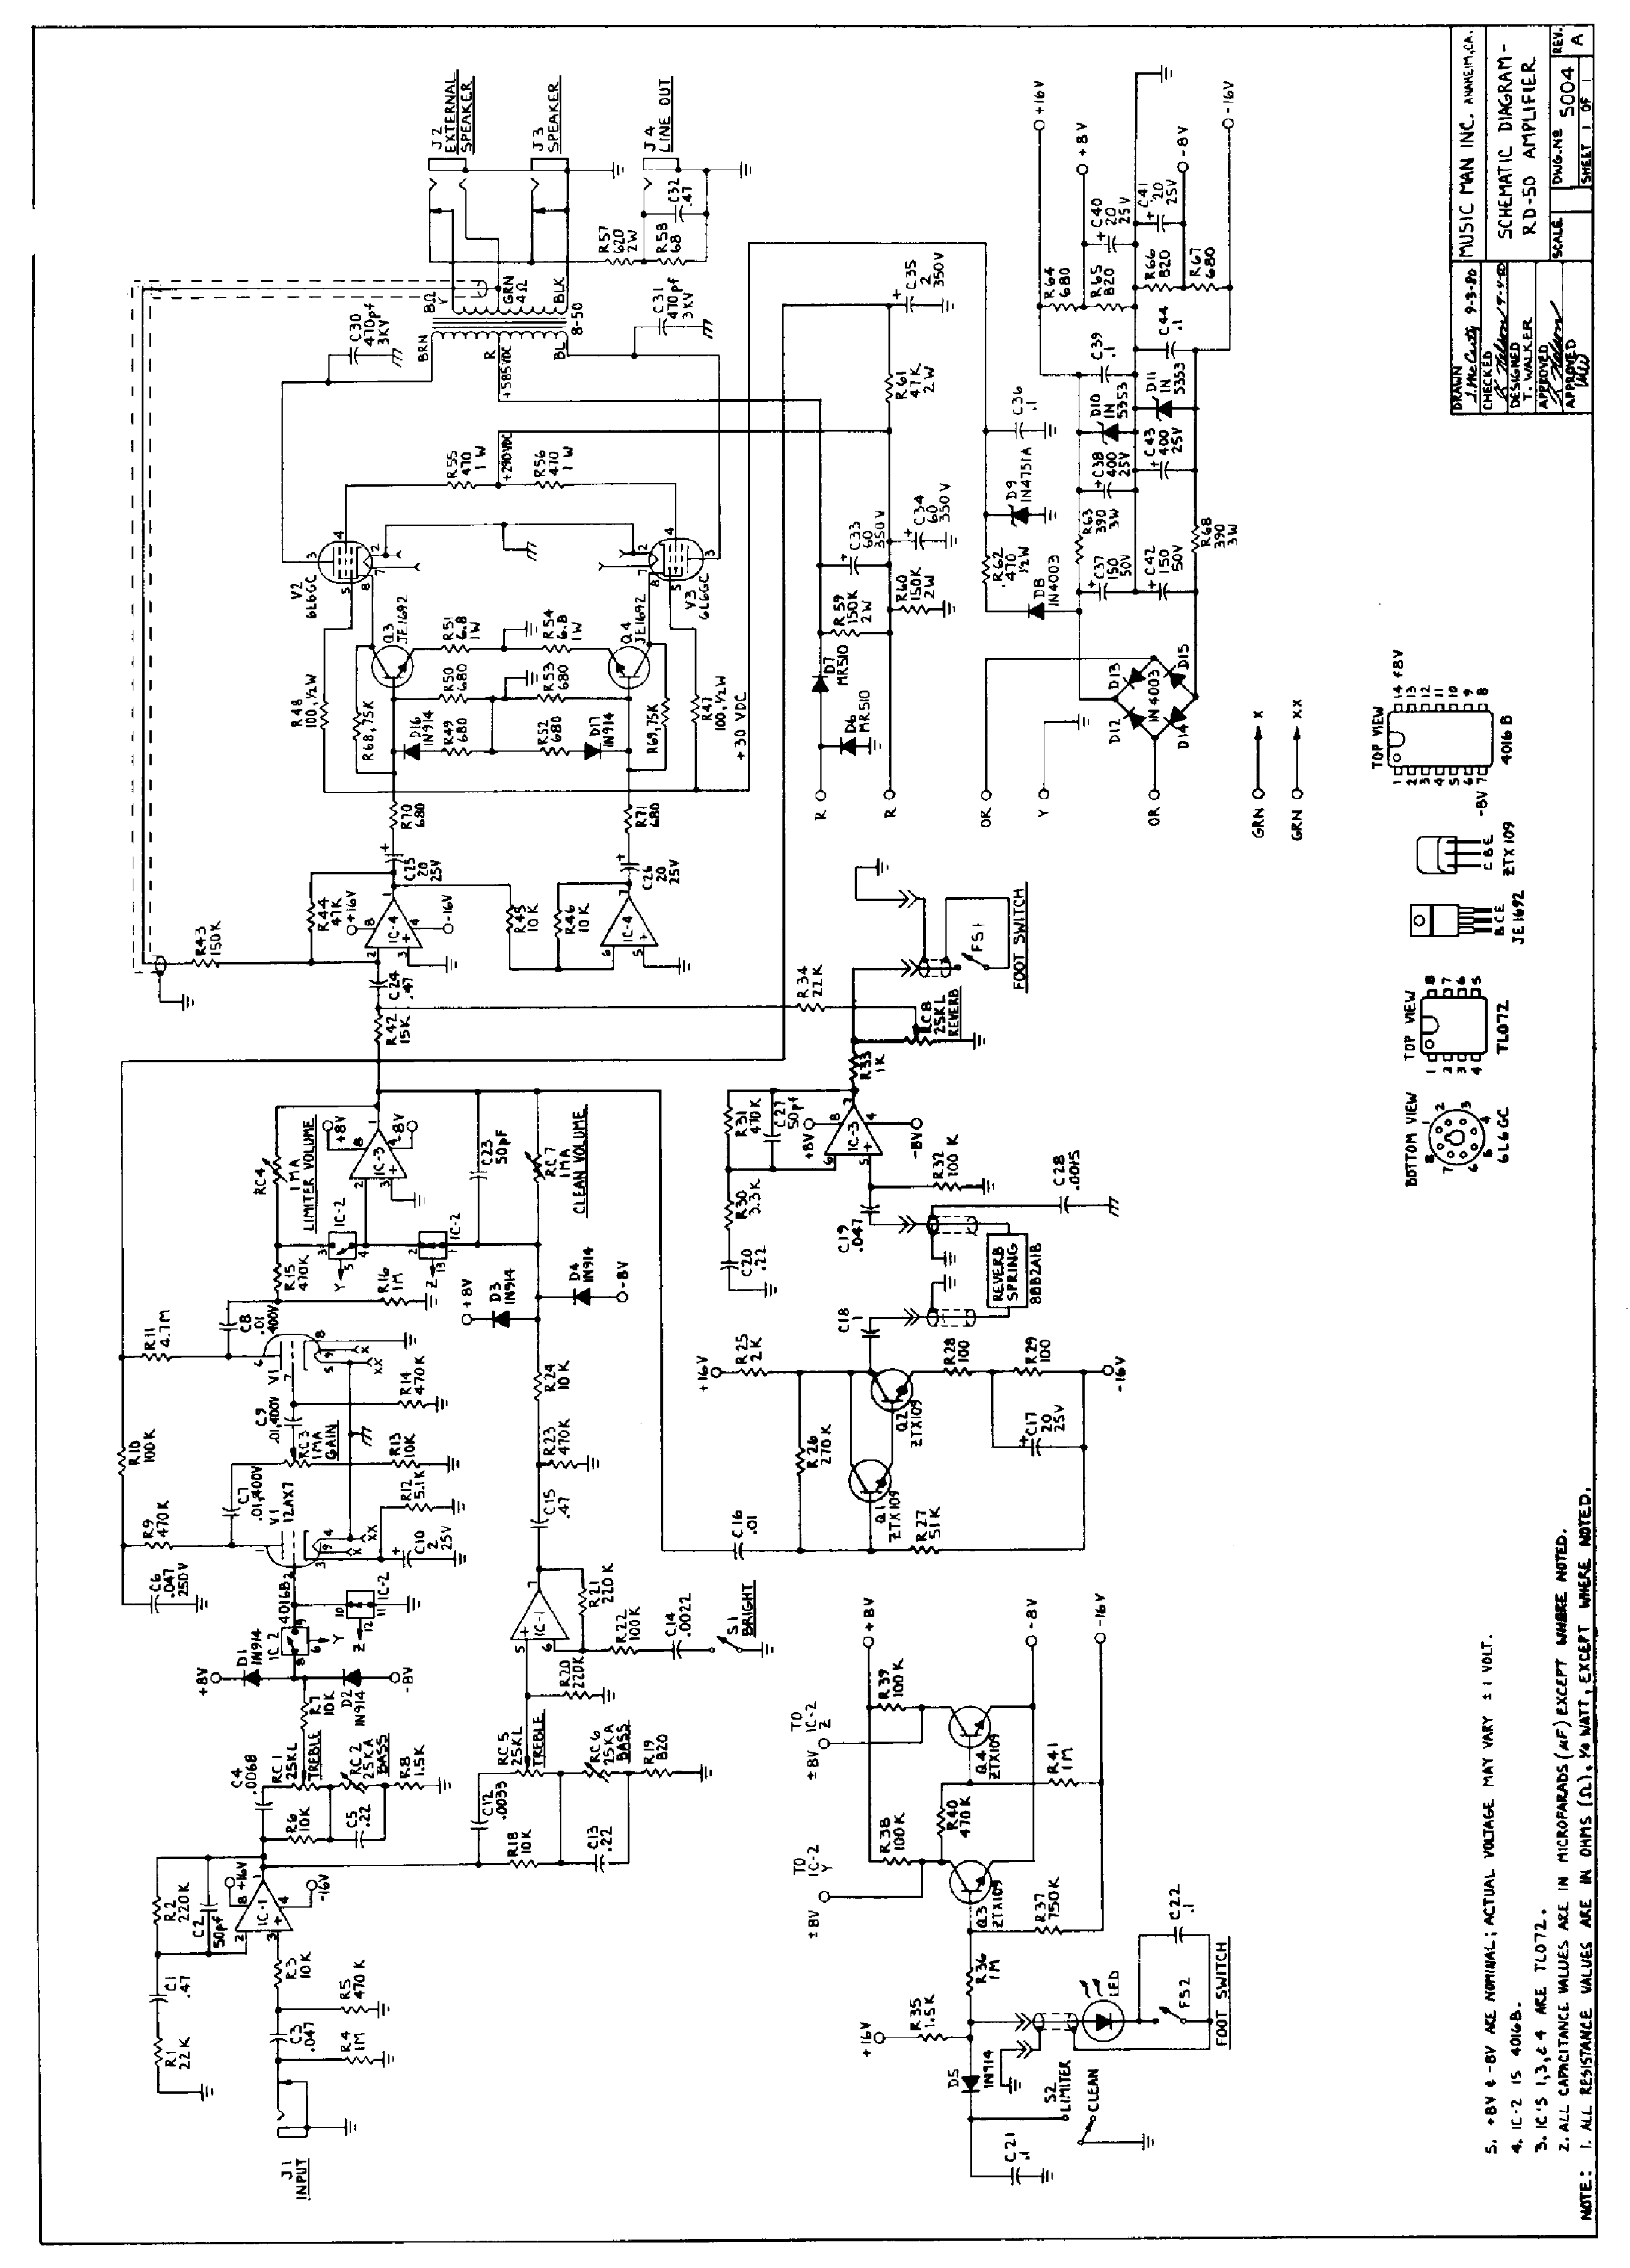 small resolution of schematic diagram of boss bf 2 flanger pedal fx circuits guitar pedals electronics audio amplifier